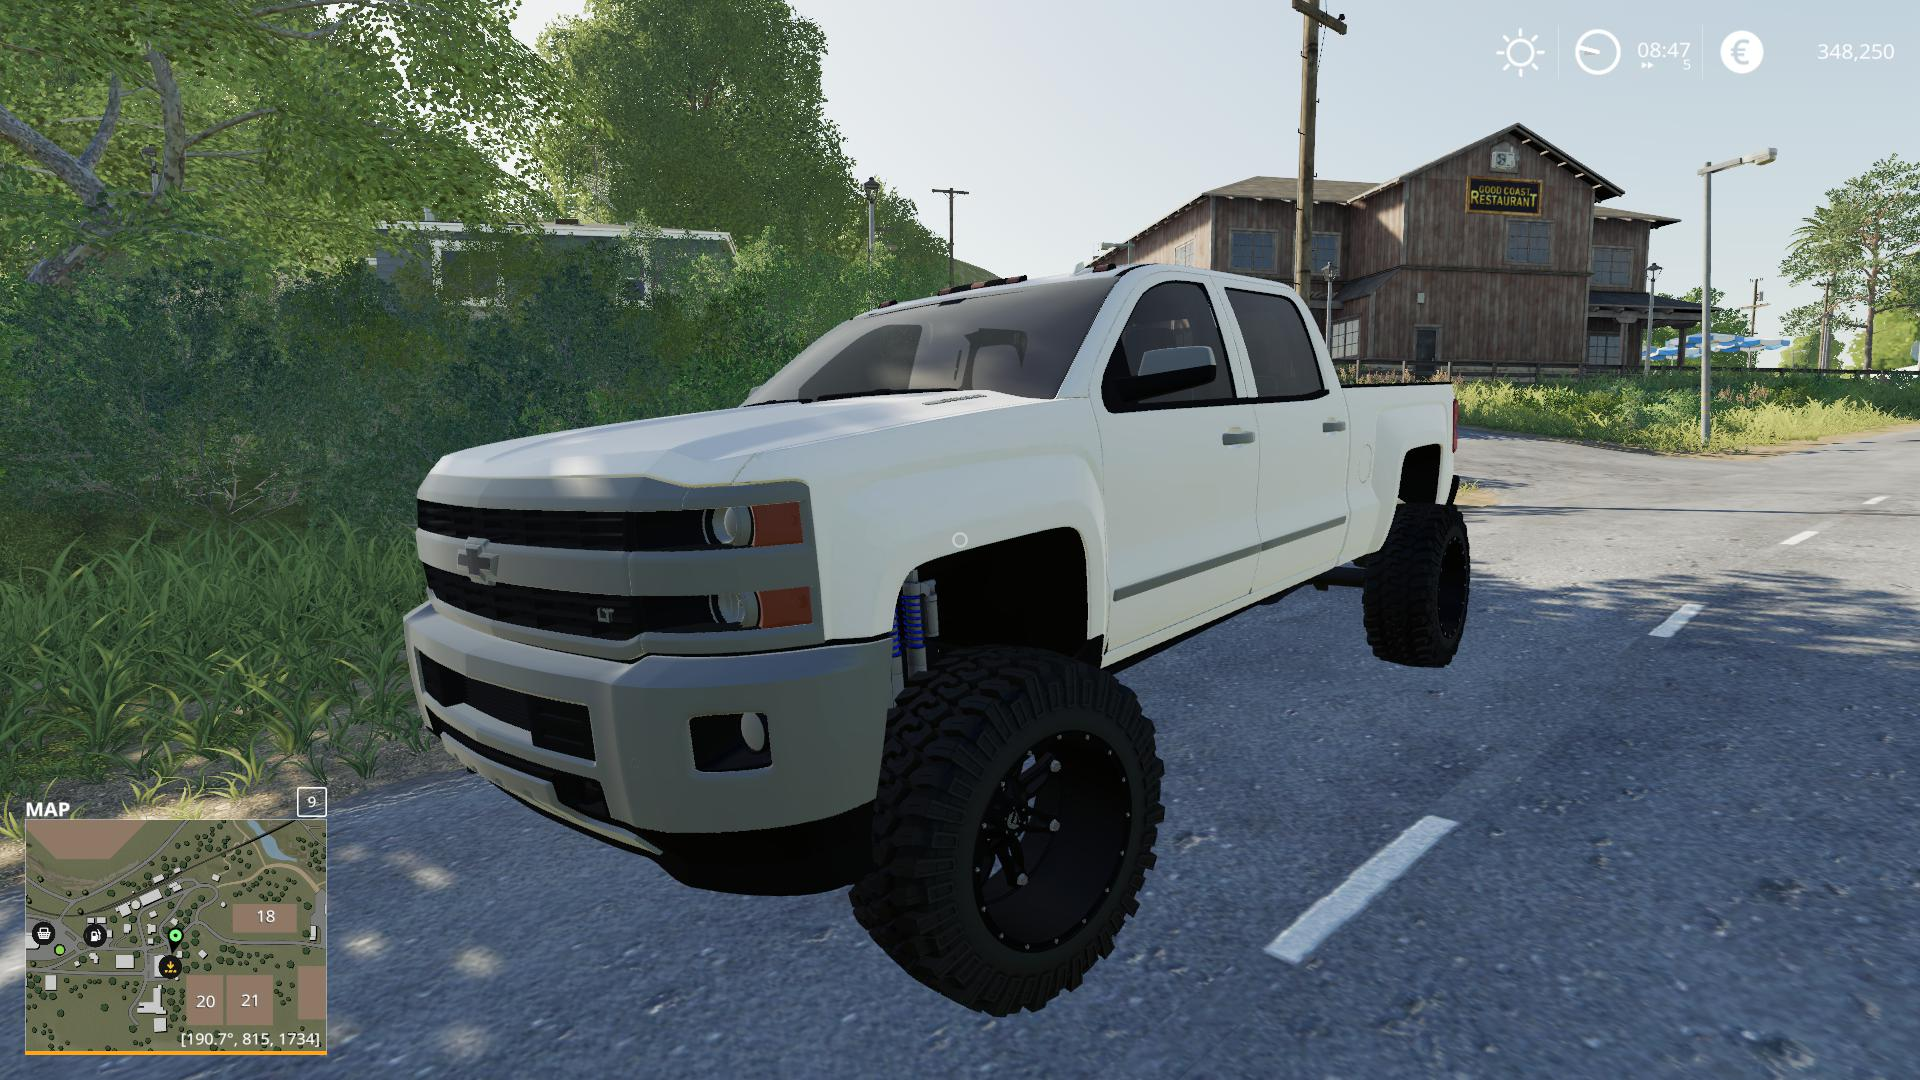 Chevy 2500hd v1.0.0.0 FS19 2016 - FS19 Mods | Farming ...